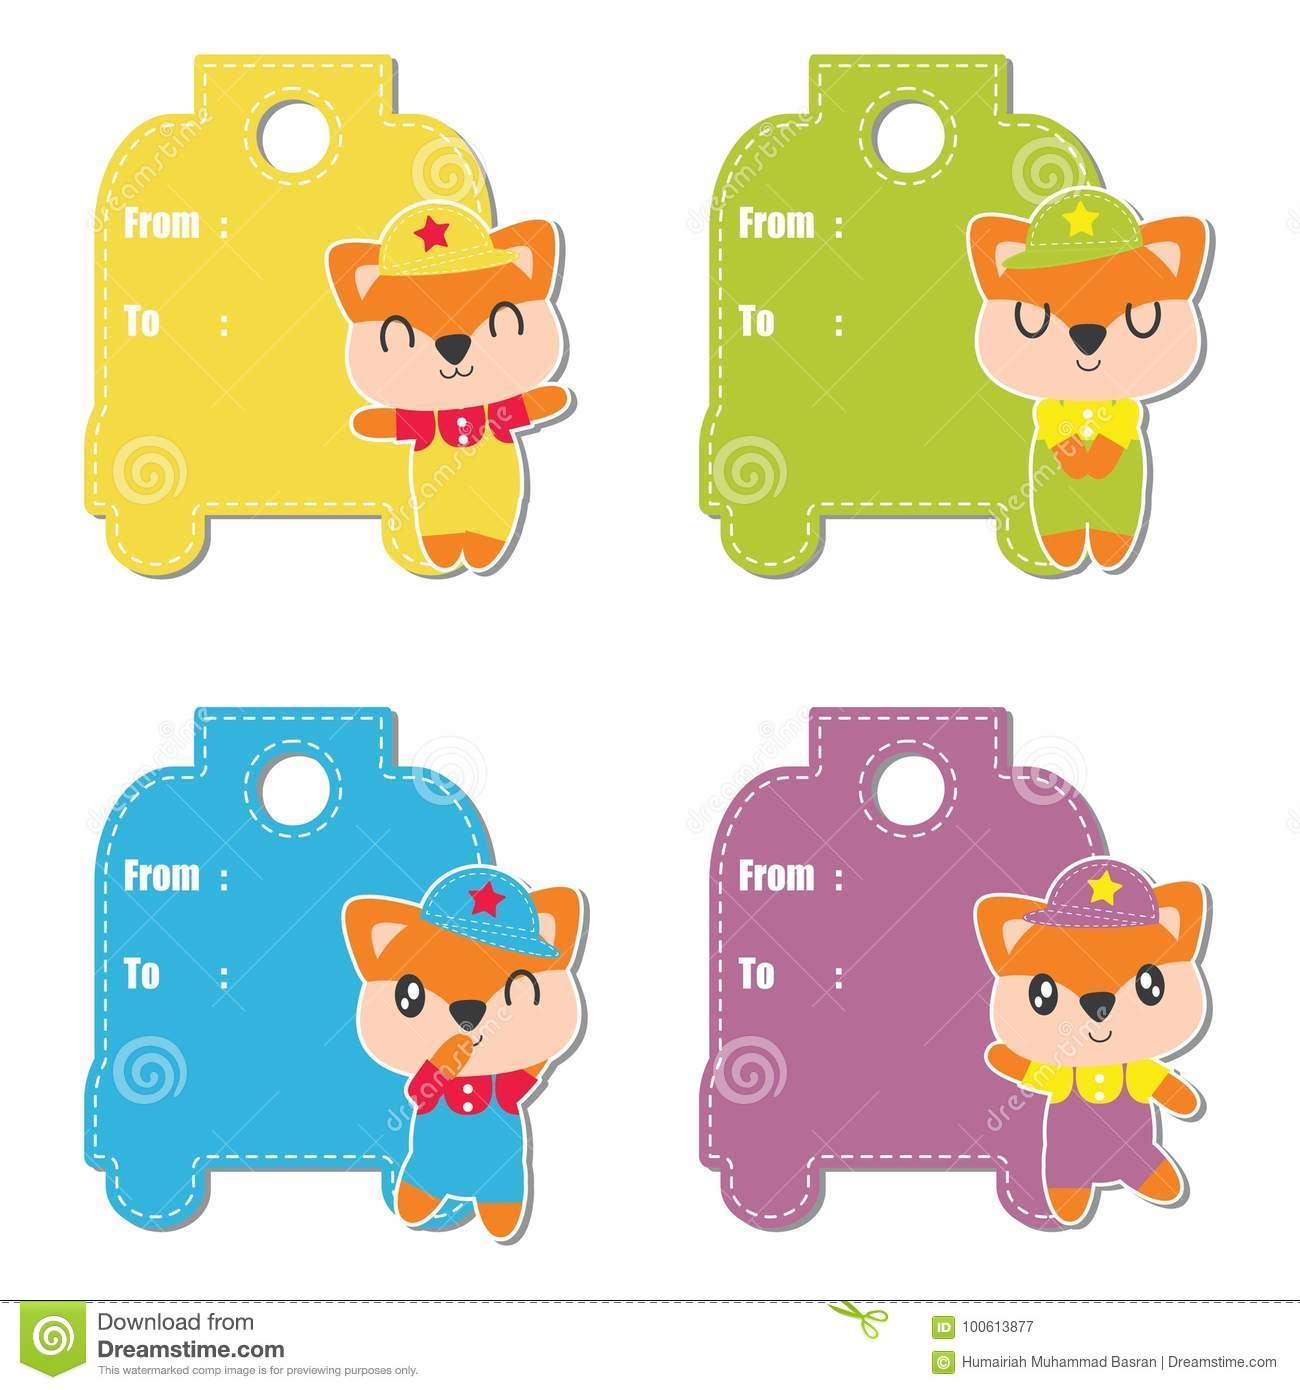 Cute Fox Boys Cartoon Illustration For Birthday Gift Tag Design Label And Sticker Set